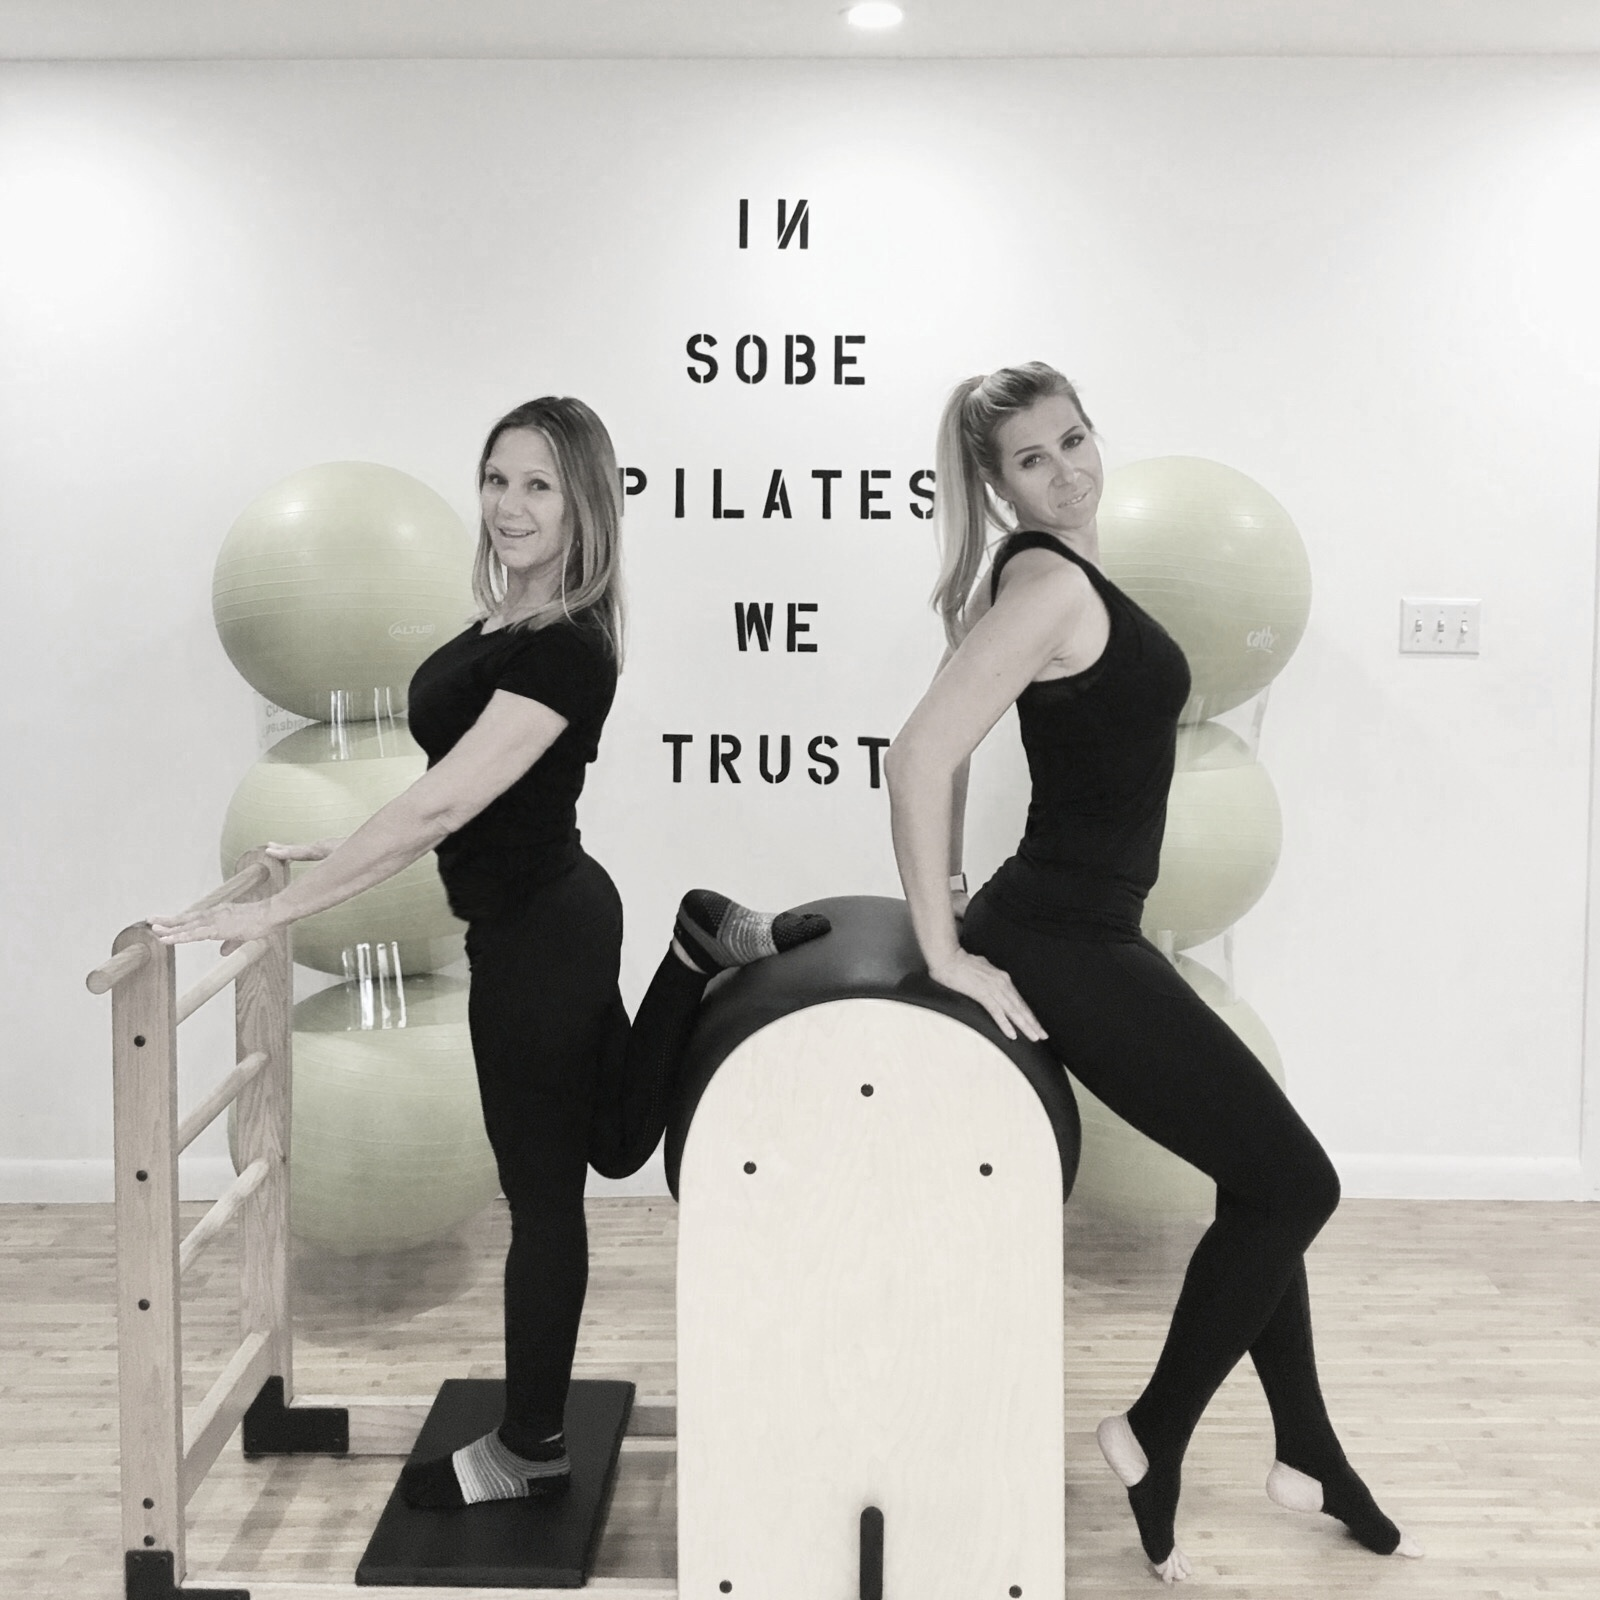 owners, susie karvelis and tina bassanese opened sobe pilates in 2008. sharing their knowledge of pilates is their passion. they both have experienced how pilates can transform bodies, enhance the mind/body connection and improve quality of life.